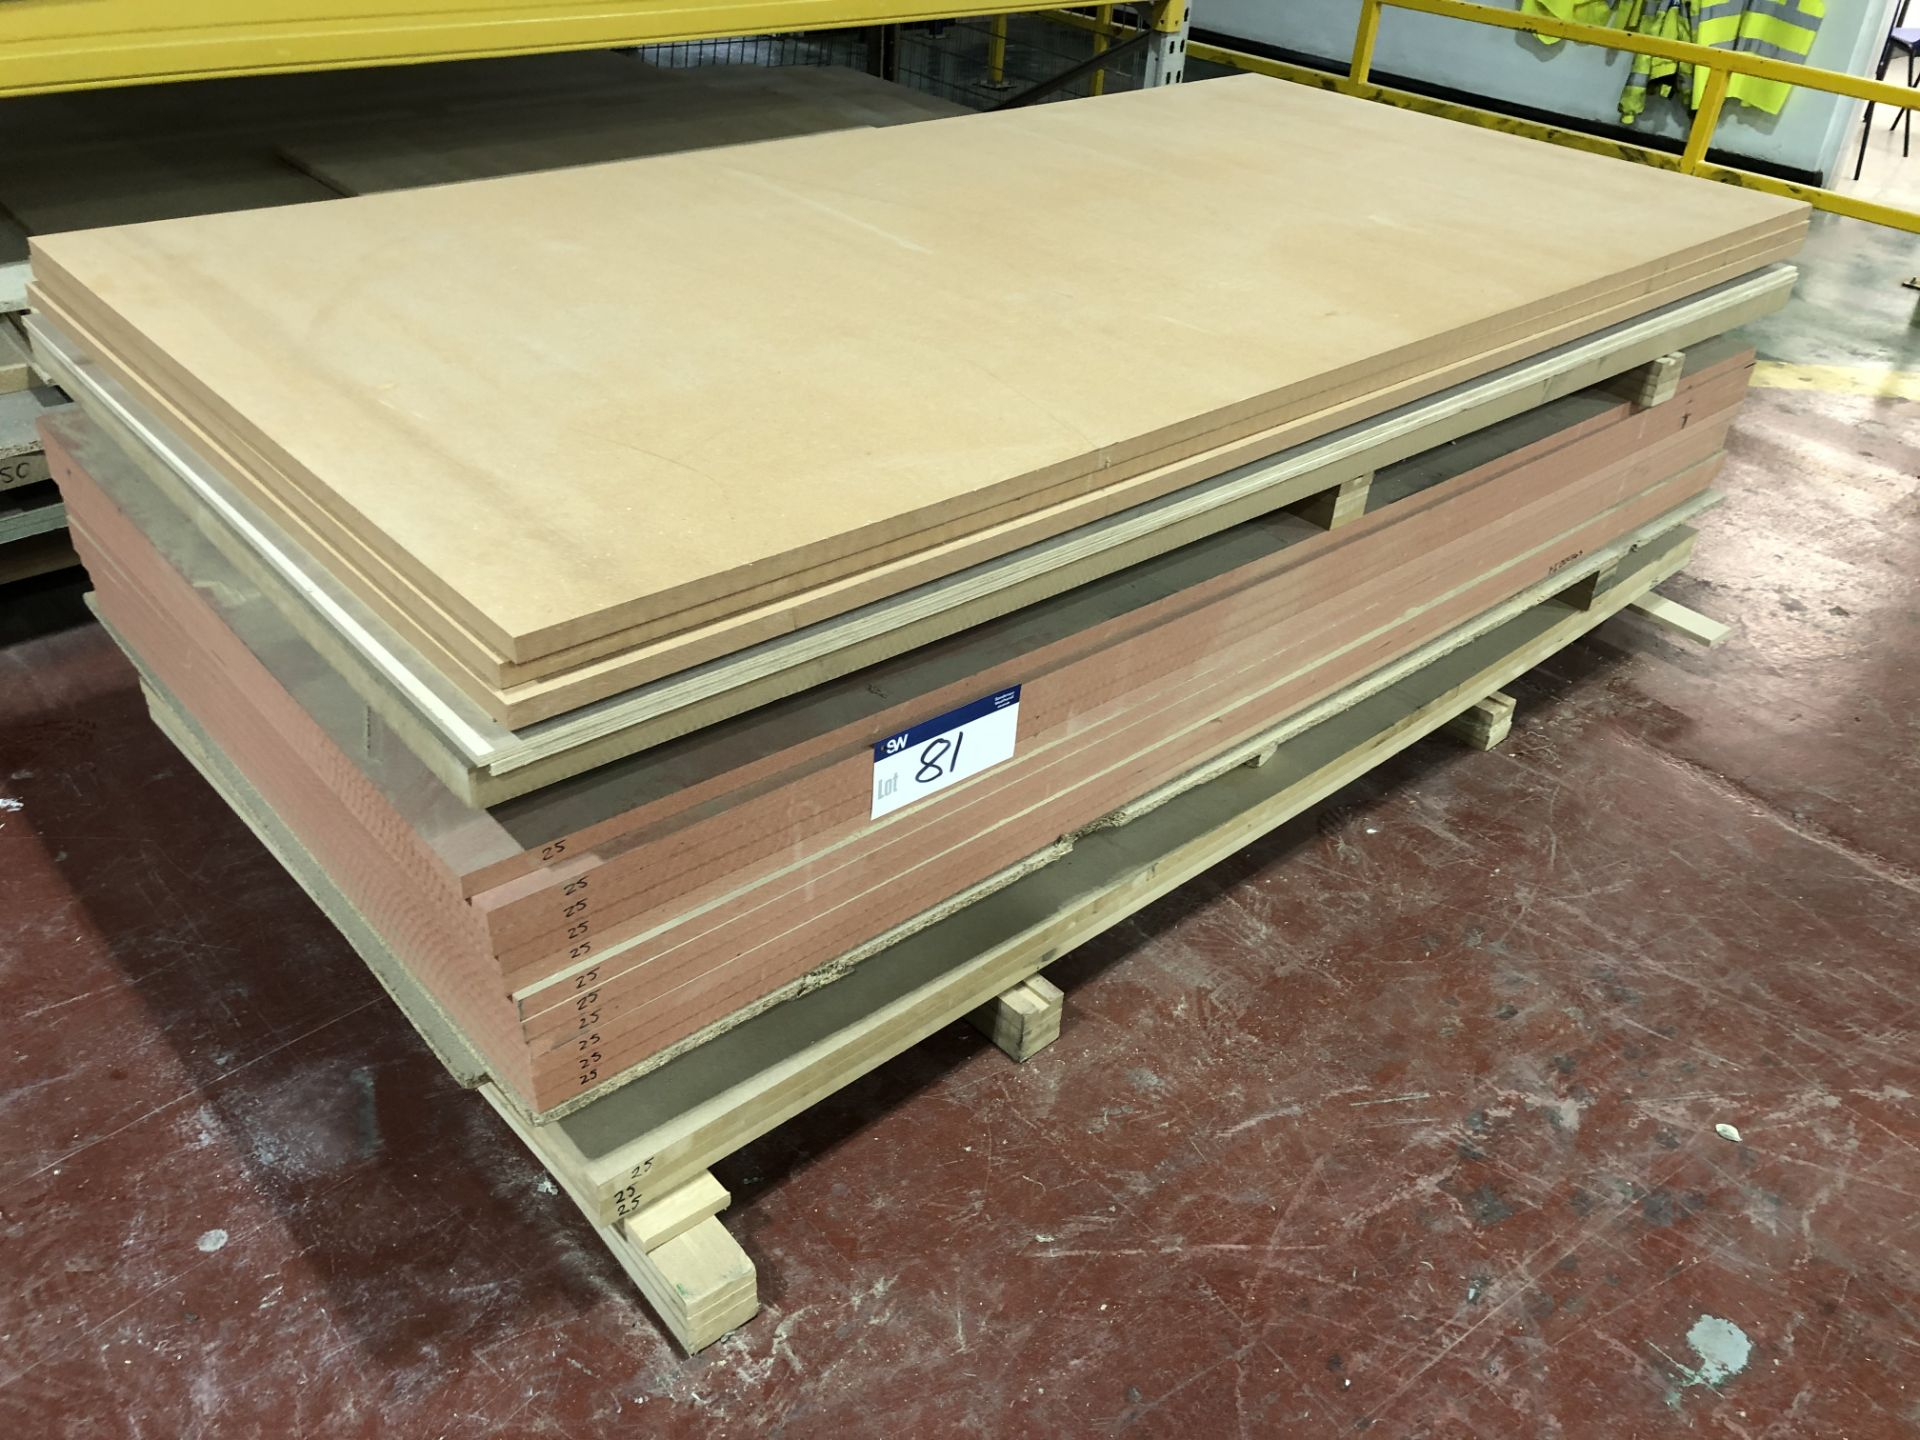 Lot 81 - 11 Sheets of 25mm x 2440 x 1220 Fire Boards. 1 Sheet of 45mm x 2440 x 1220mm MDF. 2 Sheets of 10mm x